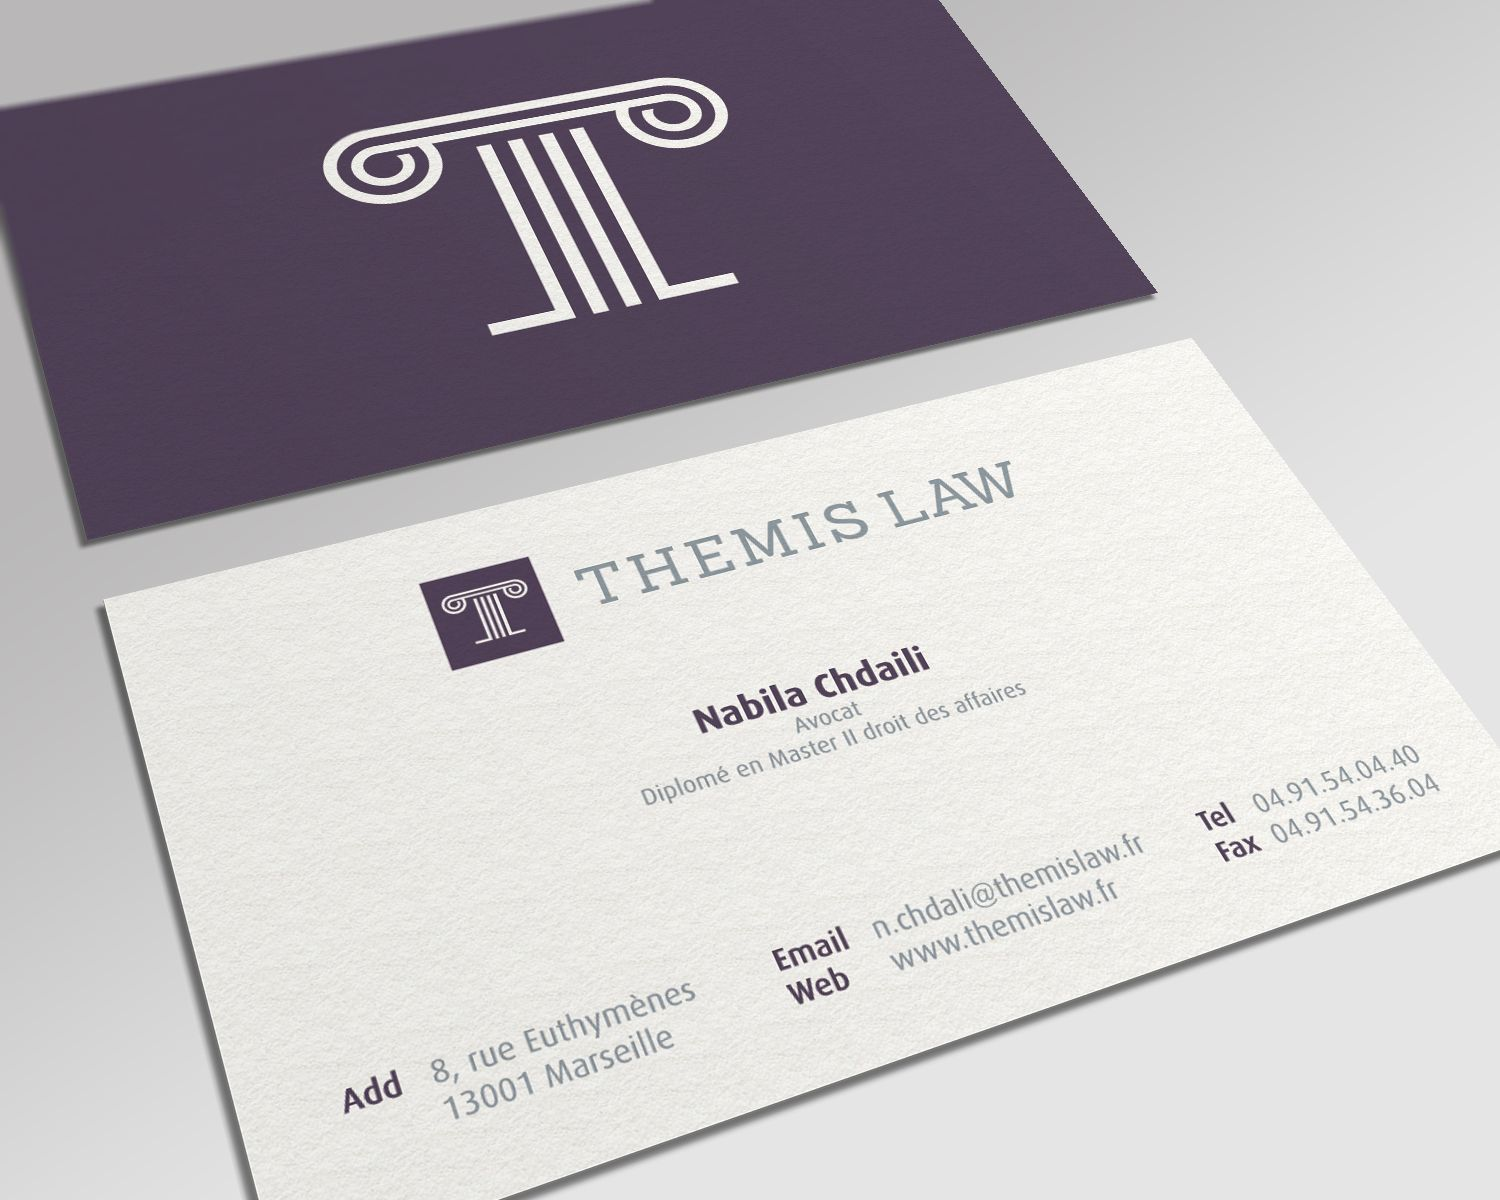 Themis law biz card mockup | Business card | Pinterest | Mockup ...